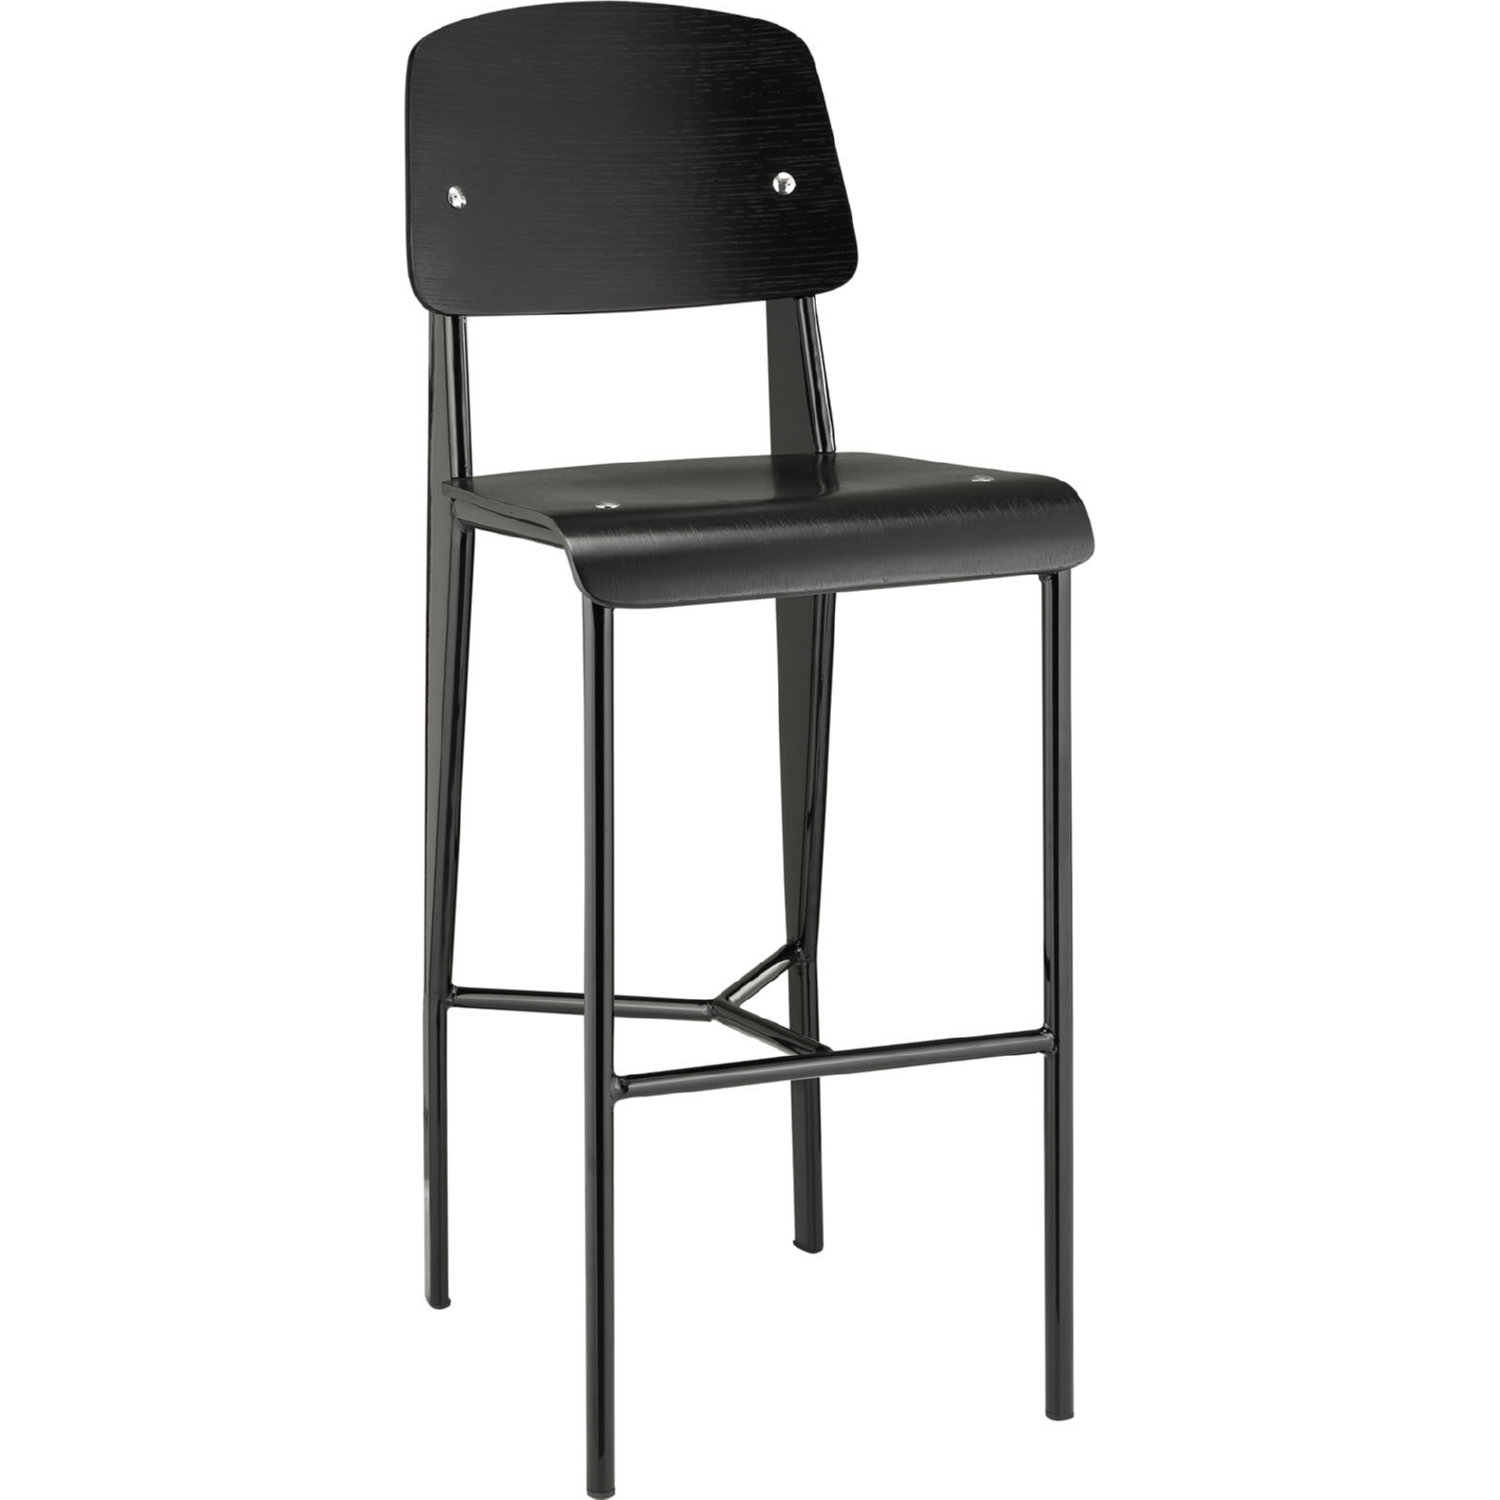 Astounding Cabin Bar Stool W Bentwood Back Seat On Black Steel Frame By Modway Dailytribune Chair Design For Home Dailytribuneorg